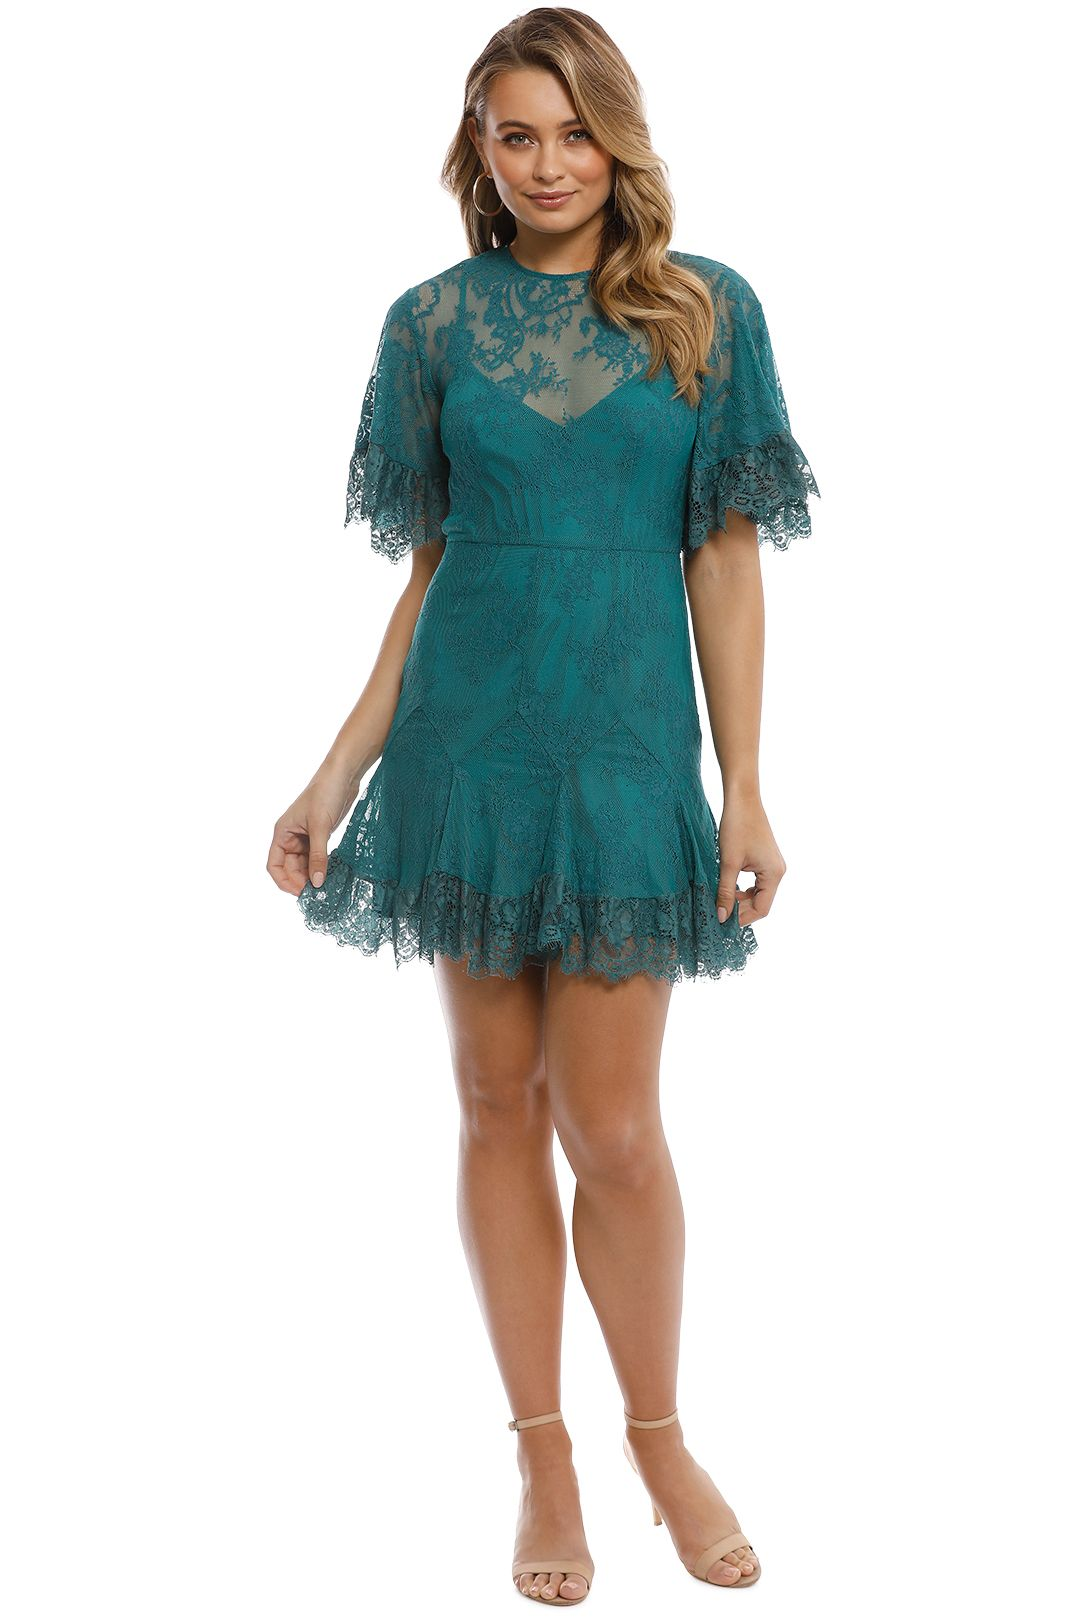 Talulah - Blind Love Mini Dress - Emerald - Front